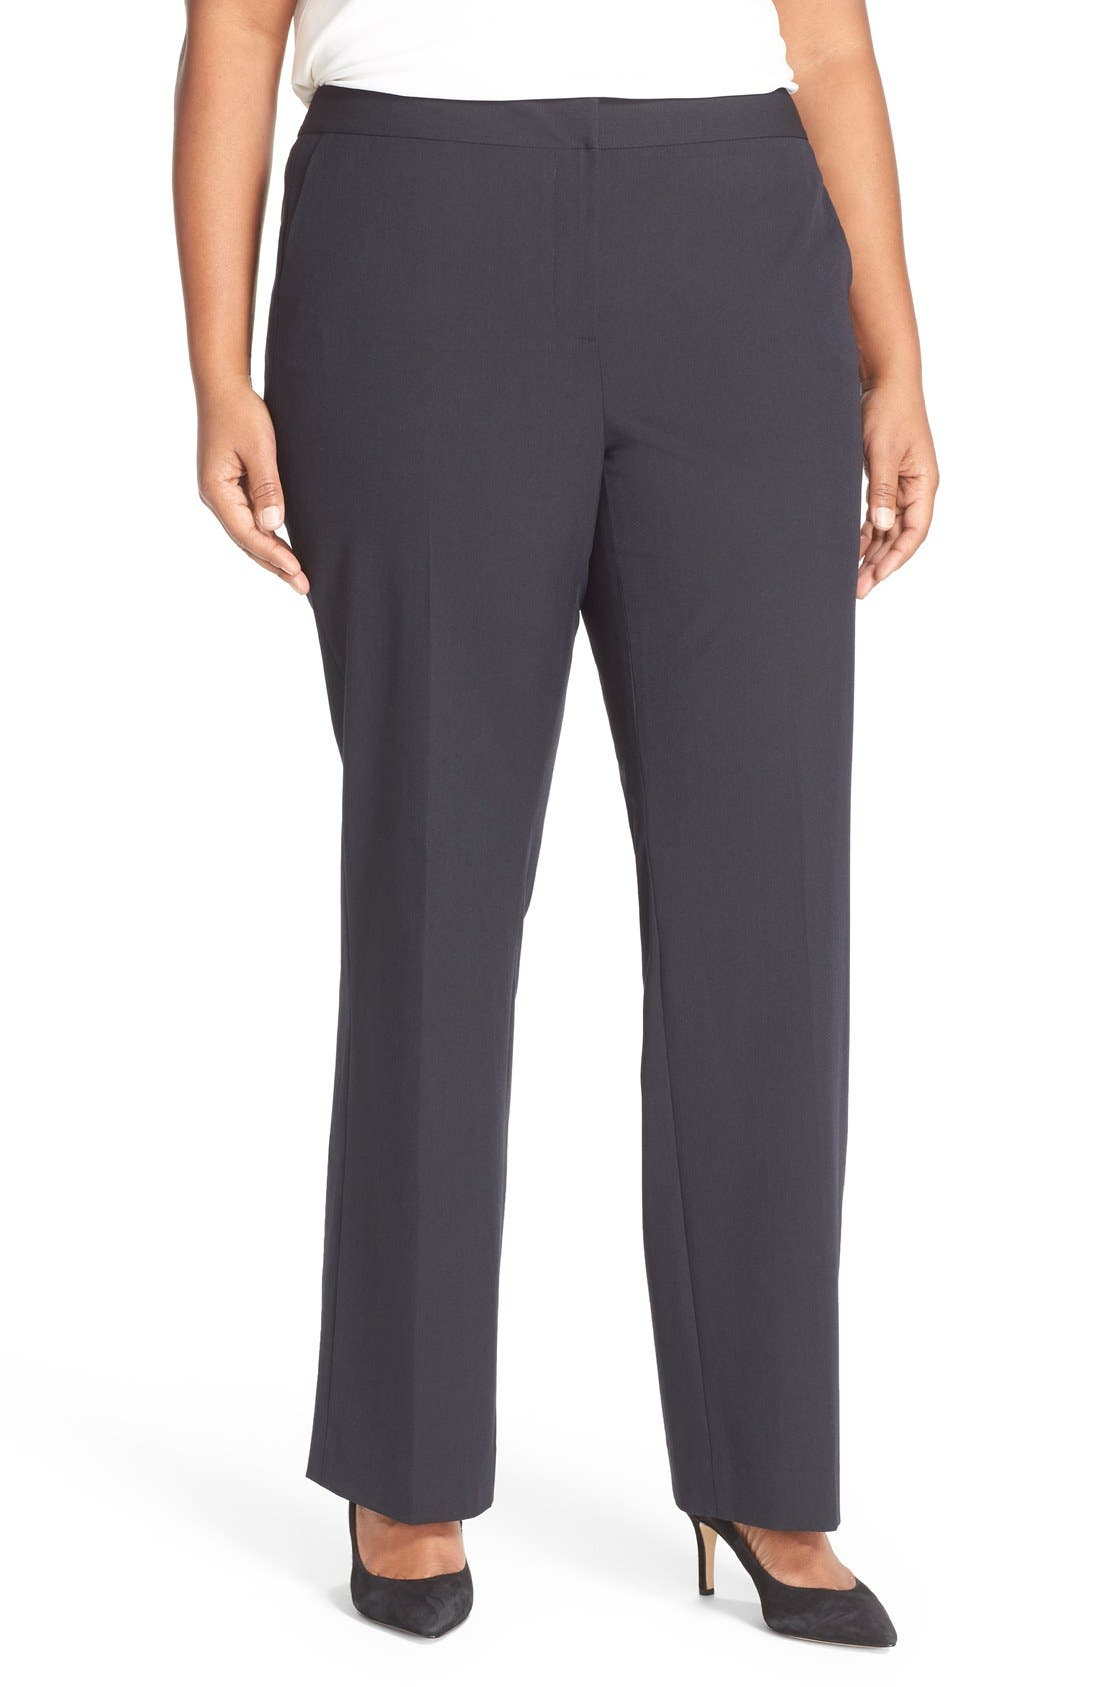 Women's Suits: Pantsuits & Skirt Suits | Nordstrom